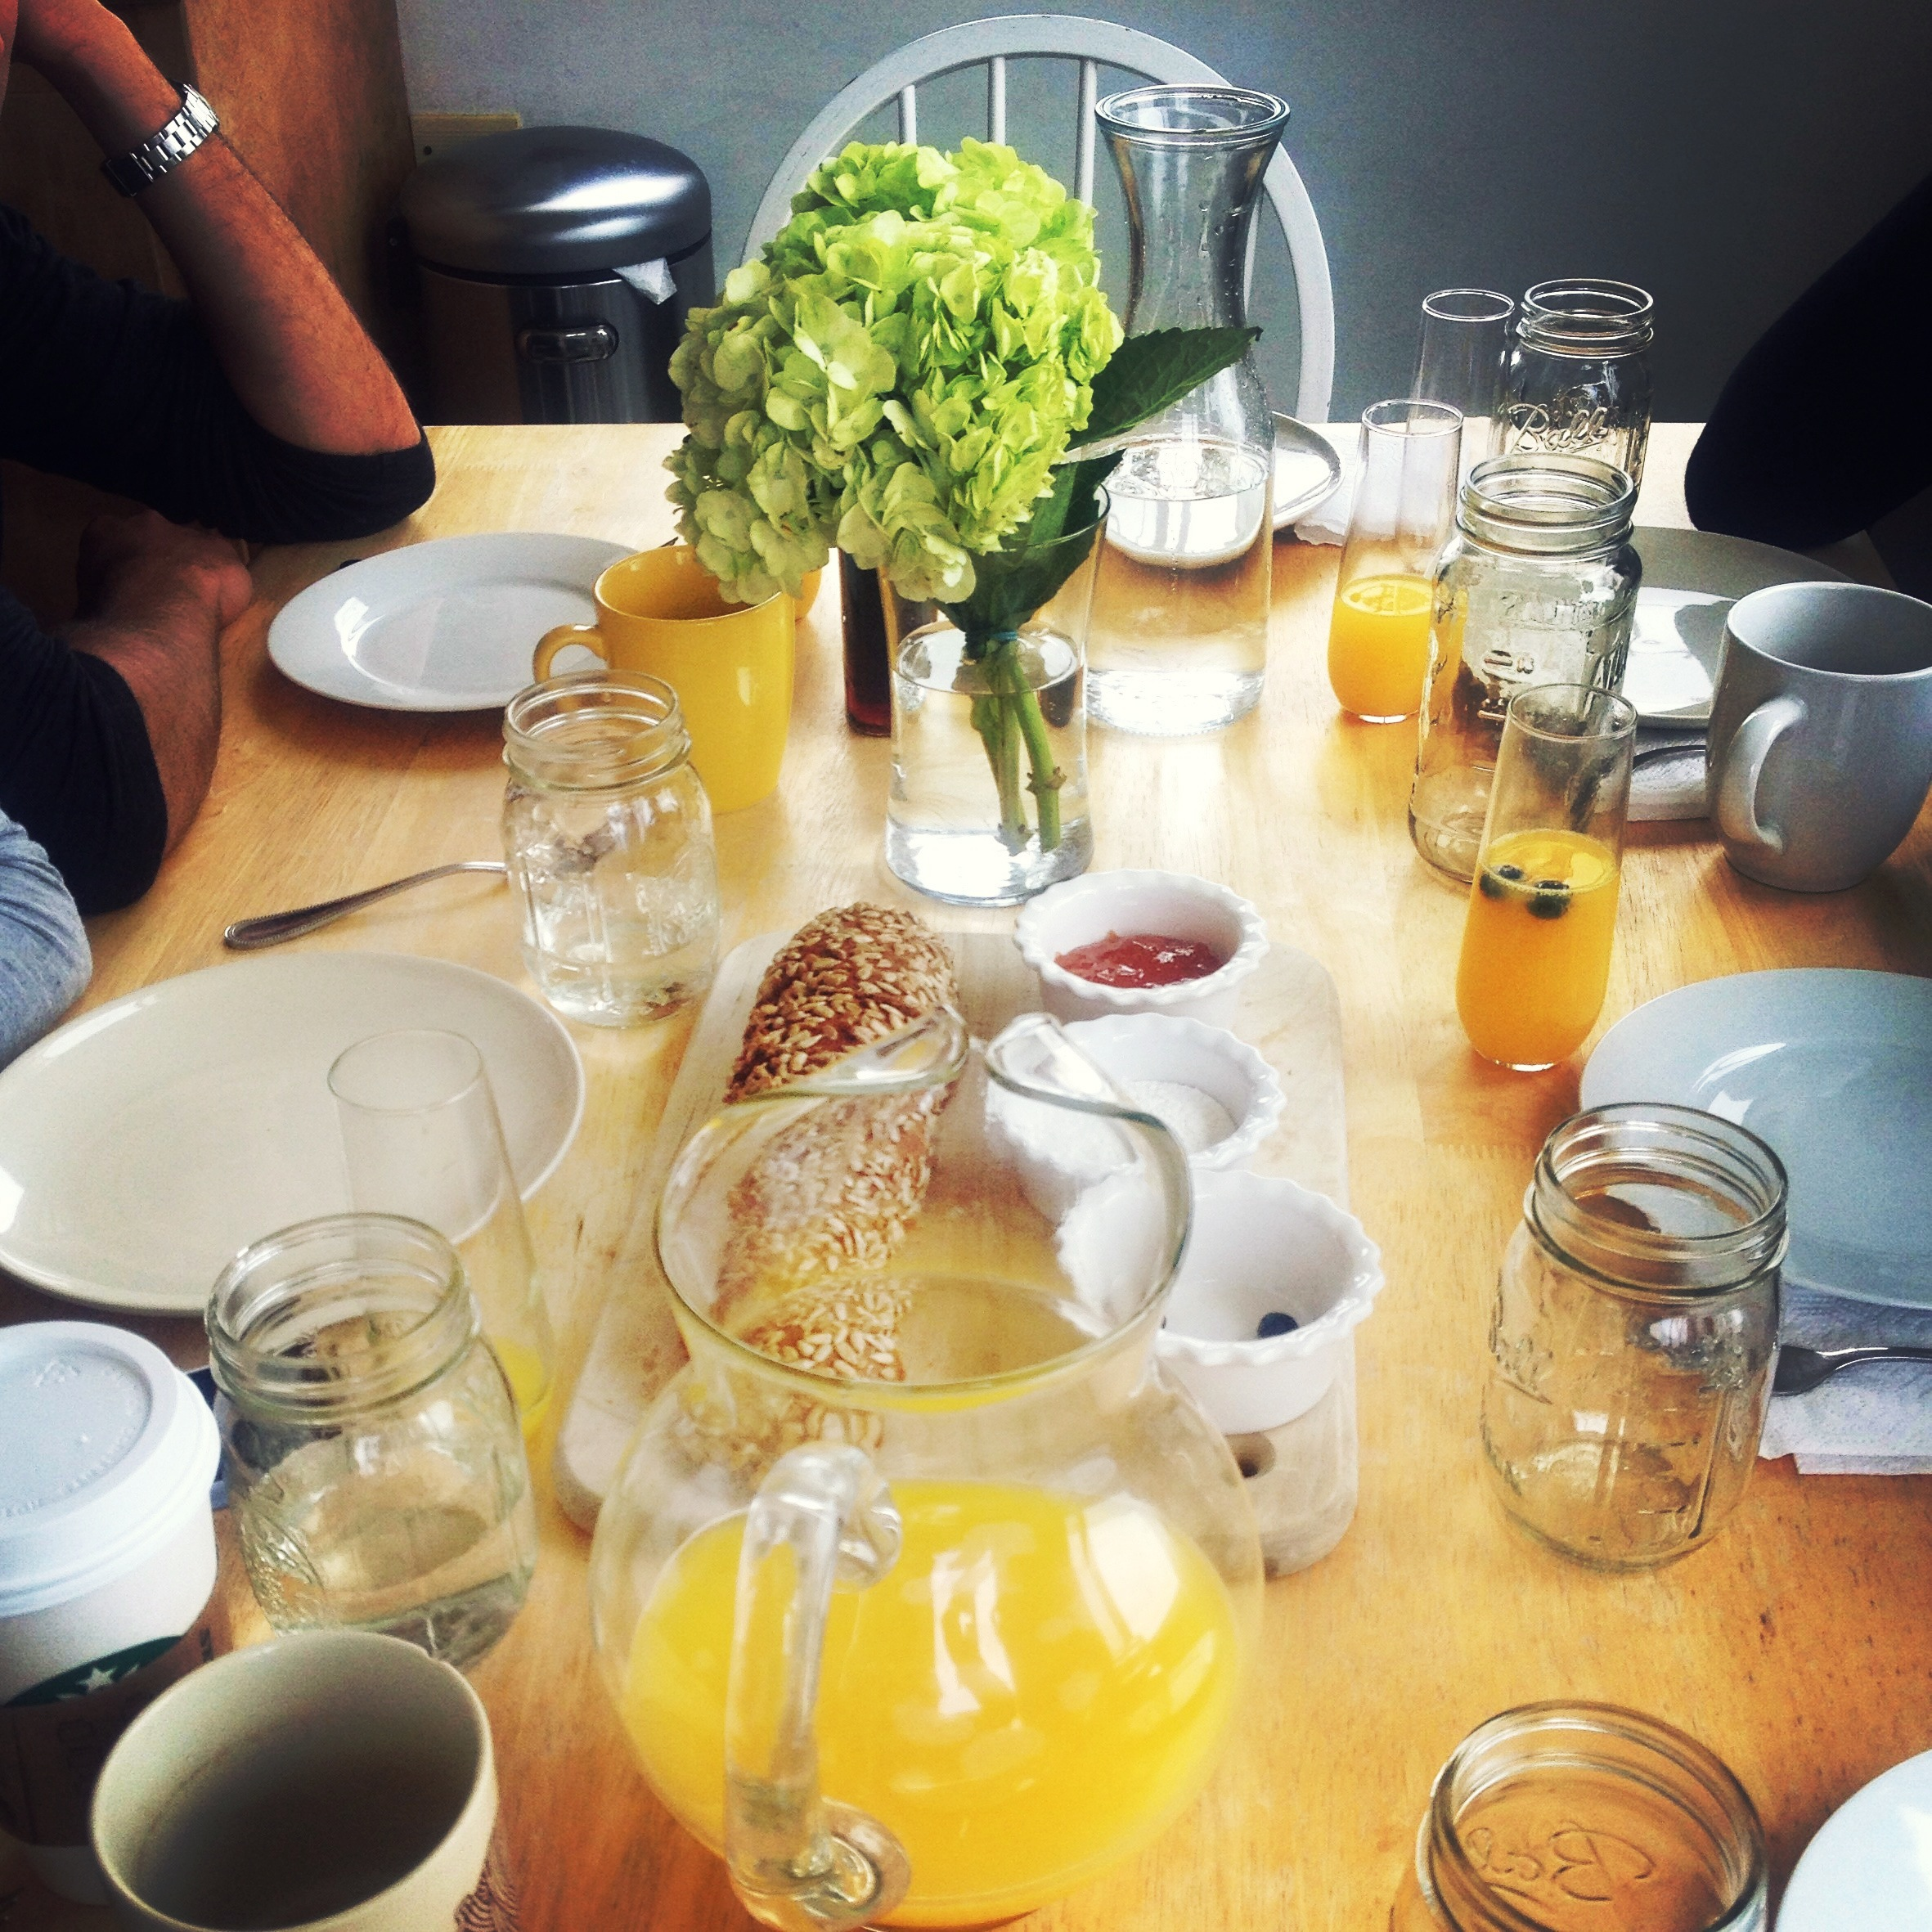 Amazing homemade brunch with new friends overlooking the city.